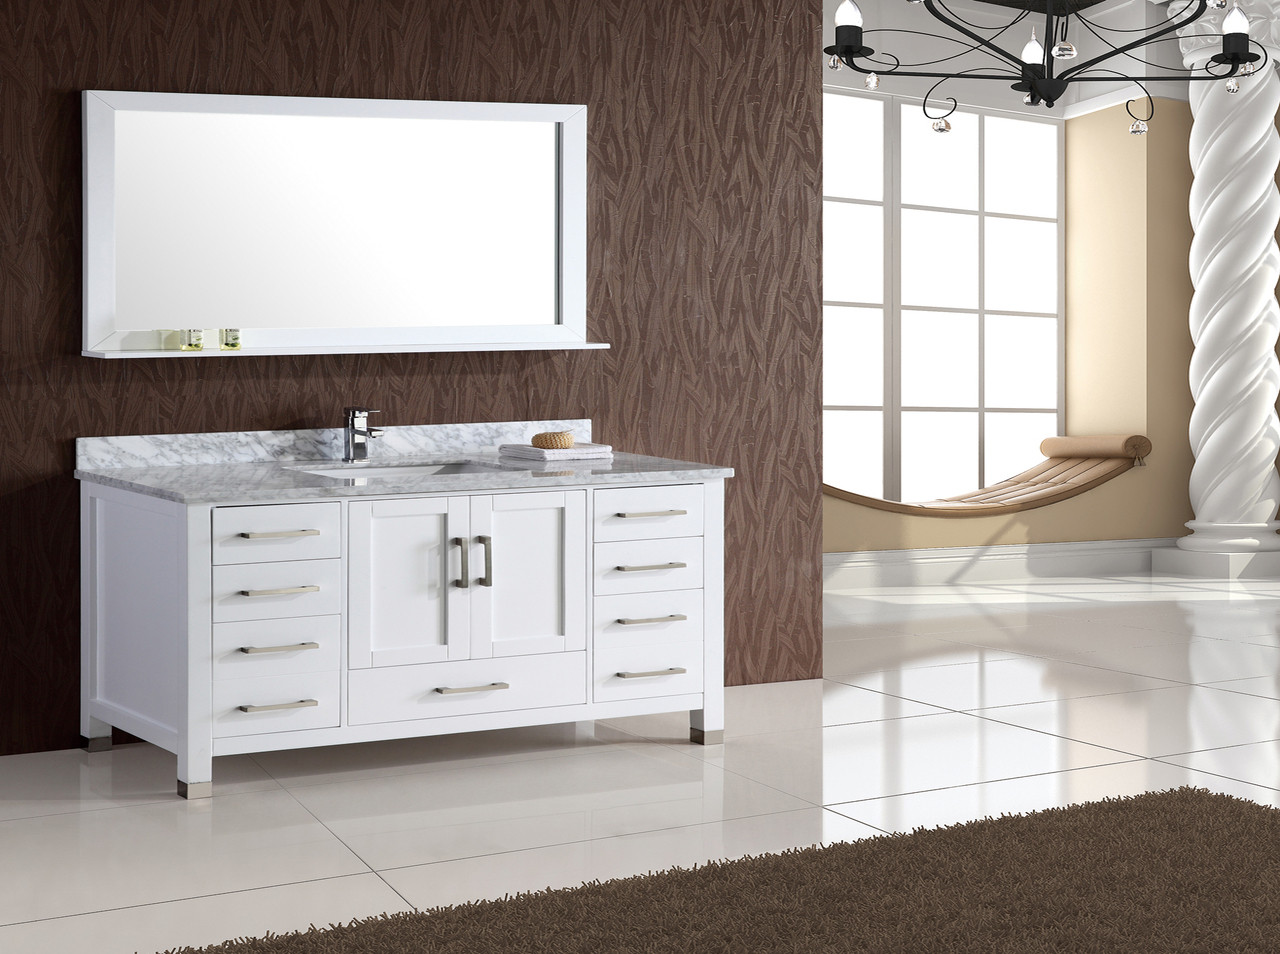 vanities white single set vanity sink bathroom mtd greece